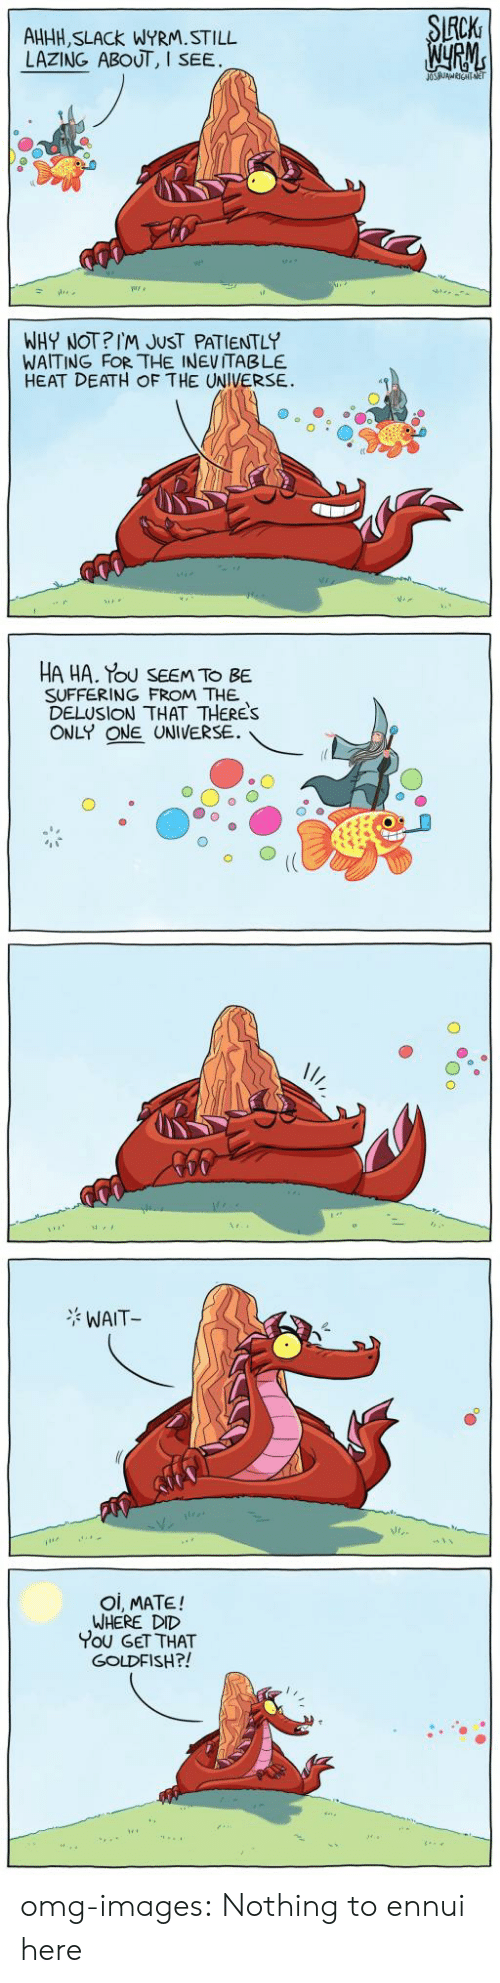 oi mate: CK  AHHH, SLACk WYRM.STILL  LAZING ABOUT, I  SEE  WHY NOT?IM JUST PATIENTLY  WAITING FOR THE INEVITABLE  HEAT DEATH OF THE UNIVERSE.  HA HA. Tou SEEM TO BE  SUFFERING FROM THE  DELUSION THAT THERES  ONLY ONE UNIVERSE.  WAIT  Oi, MATE!  WHERE DID  You GET THAT  GOLDFISH?! omg-images:  Nothing to ennui here